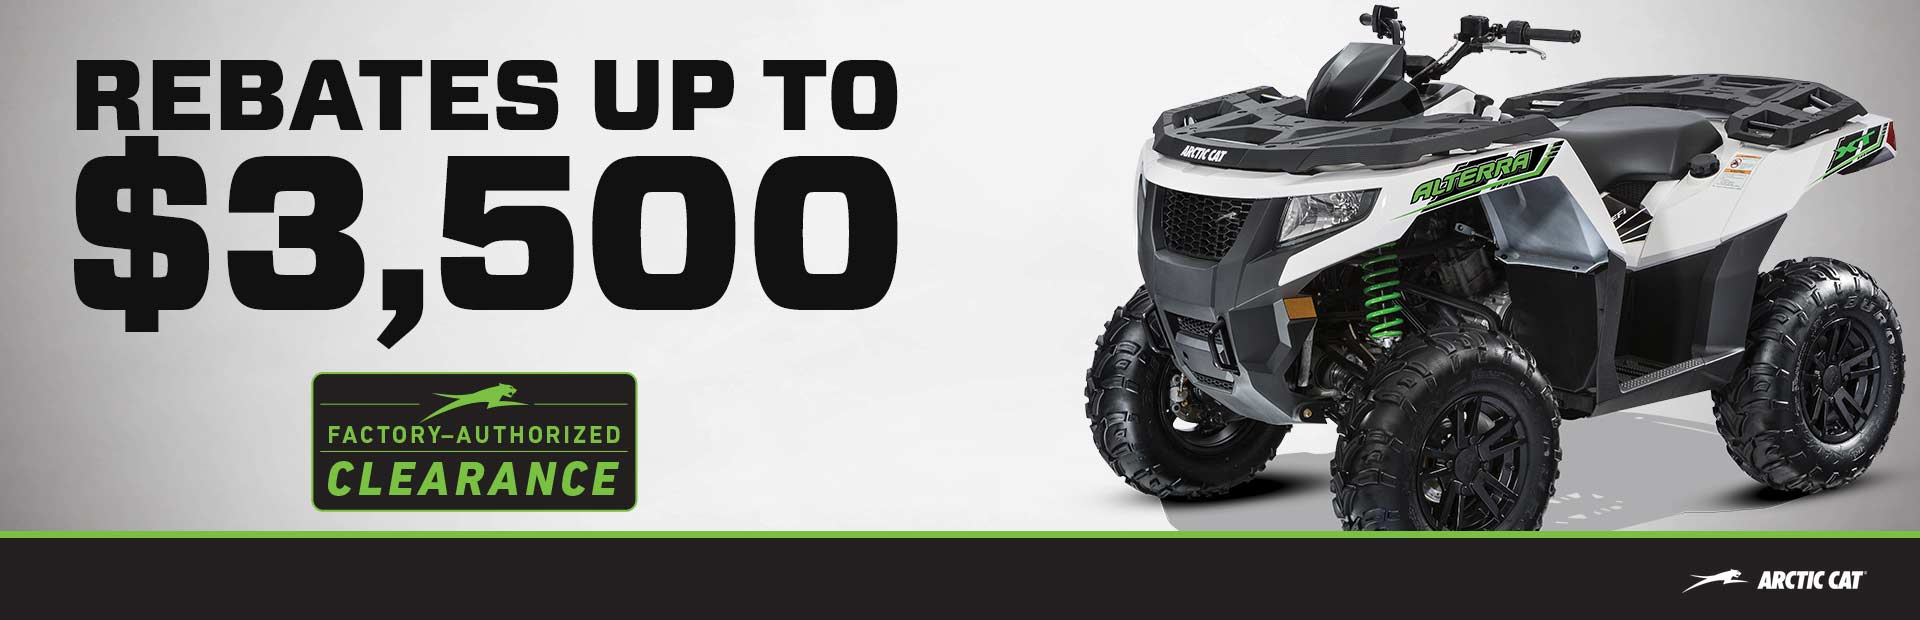 Arctic Cat: Factory Authorized Clearance on ATVs